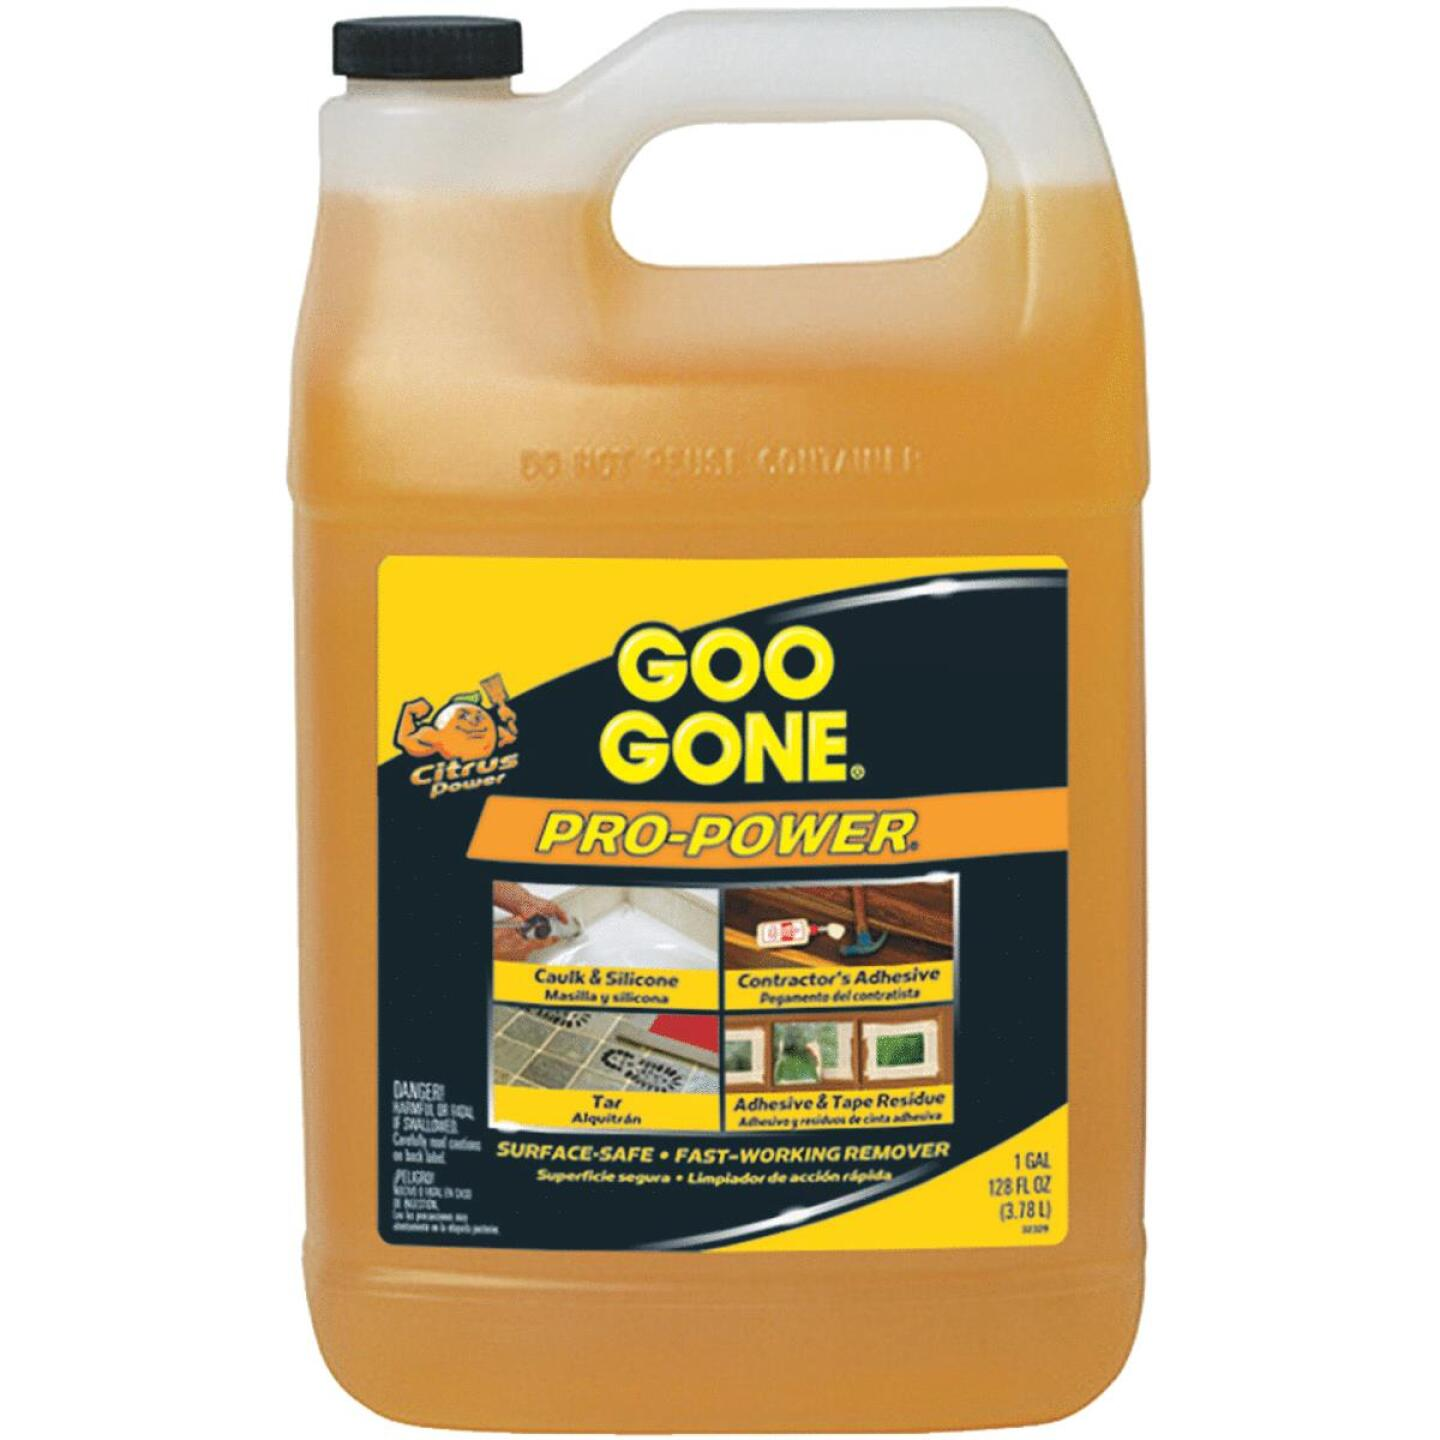 Goo Gone 1 Gal. Pro-Power Adhesive Remover Image 175